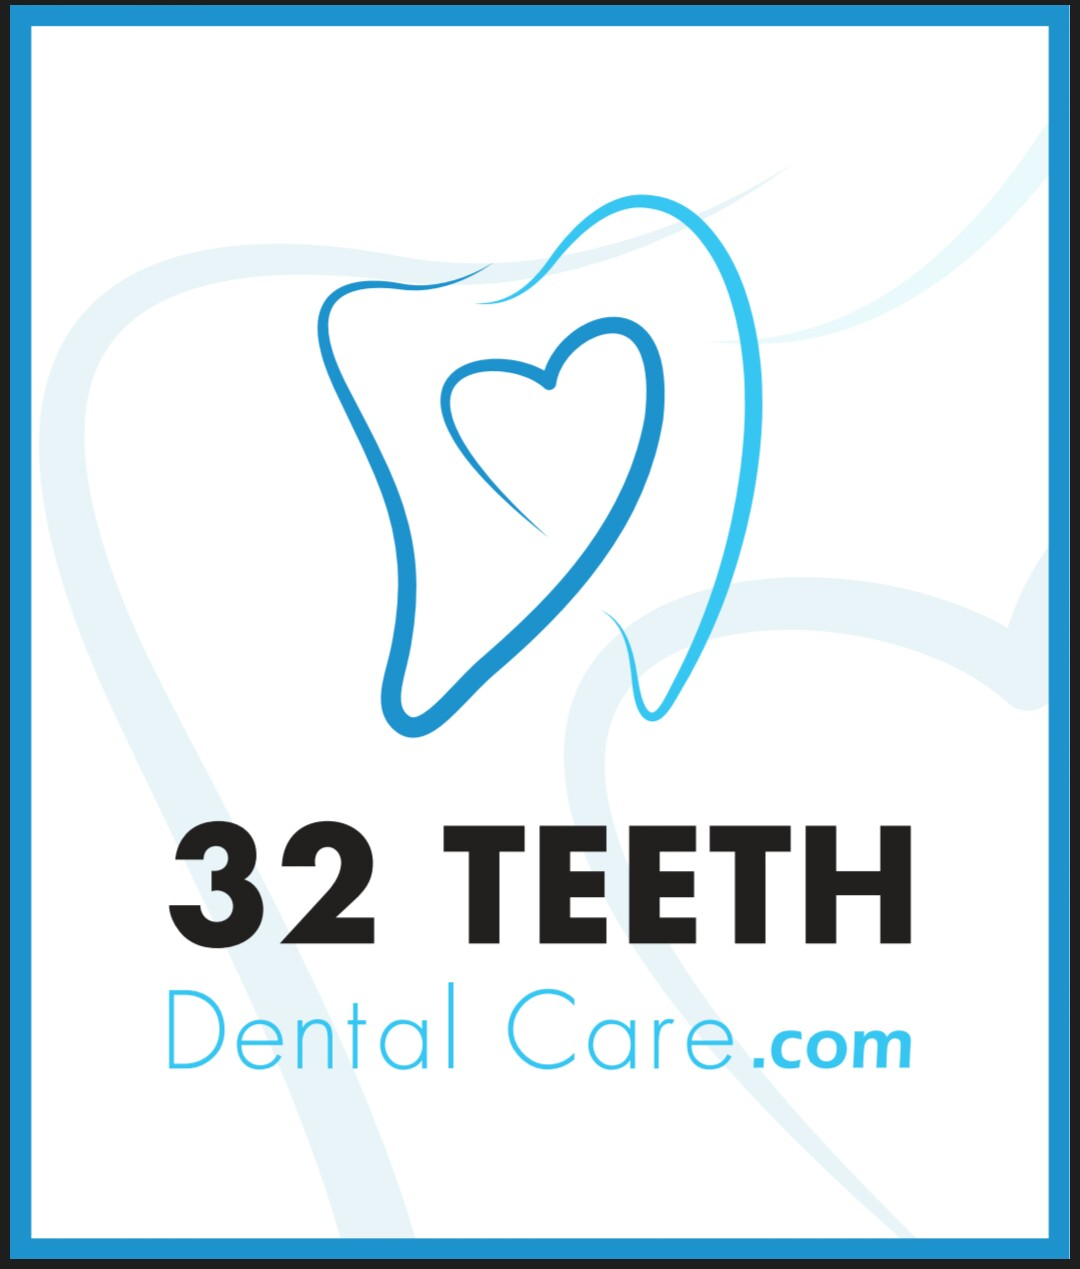 32 Teeth Dental Care